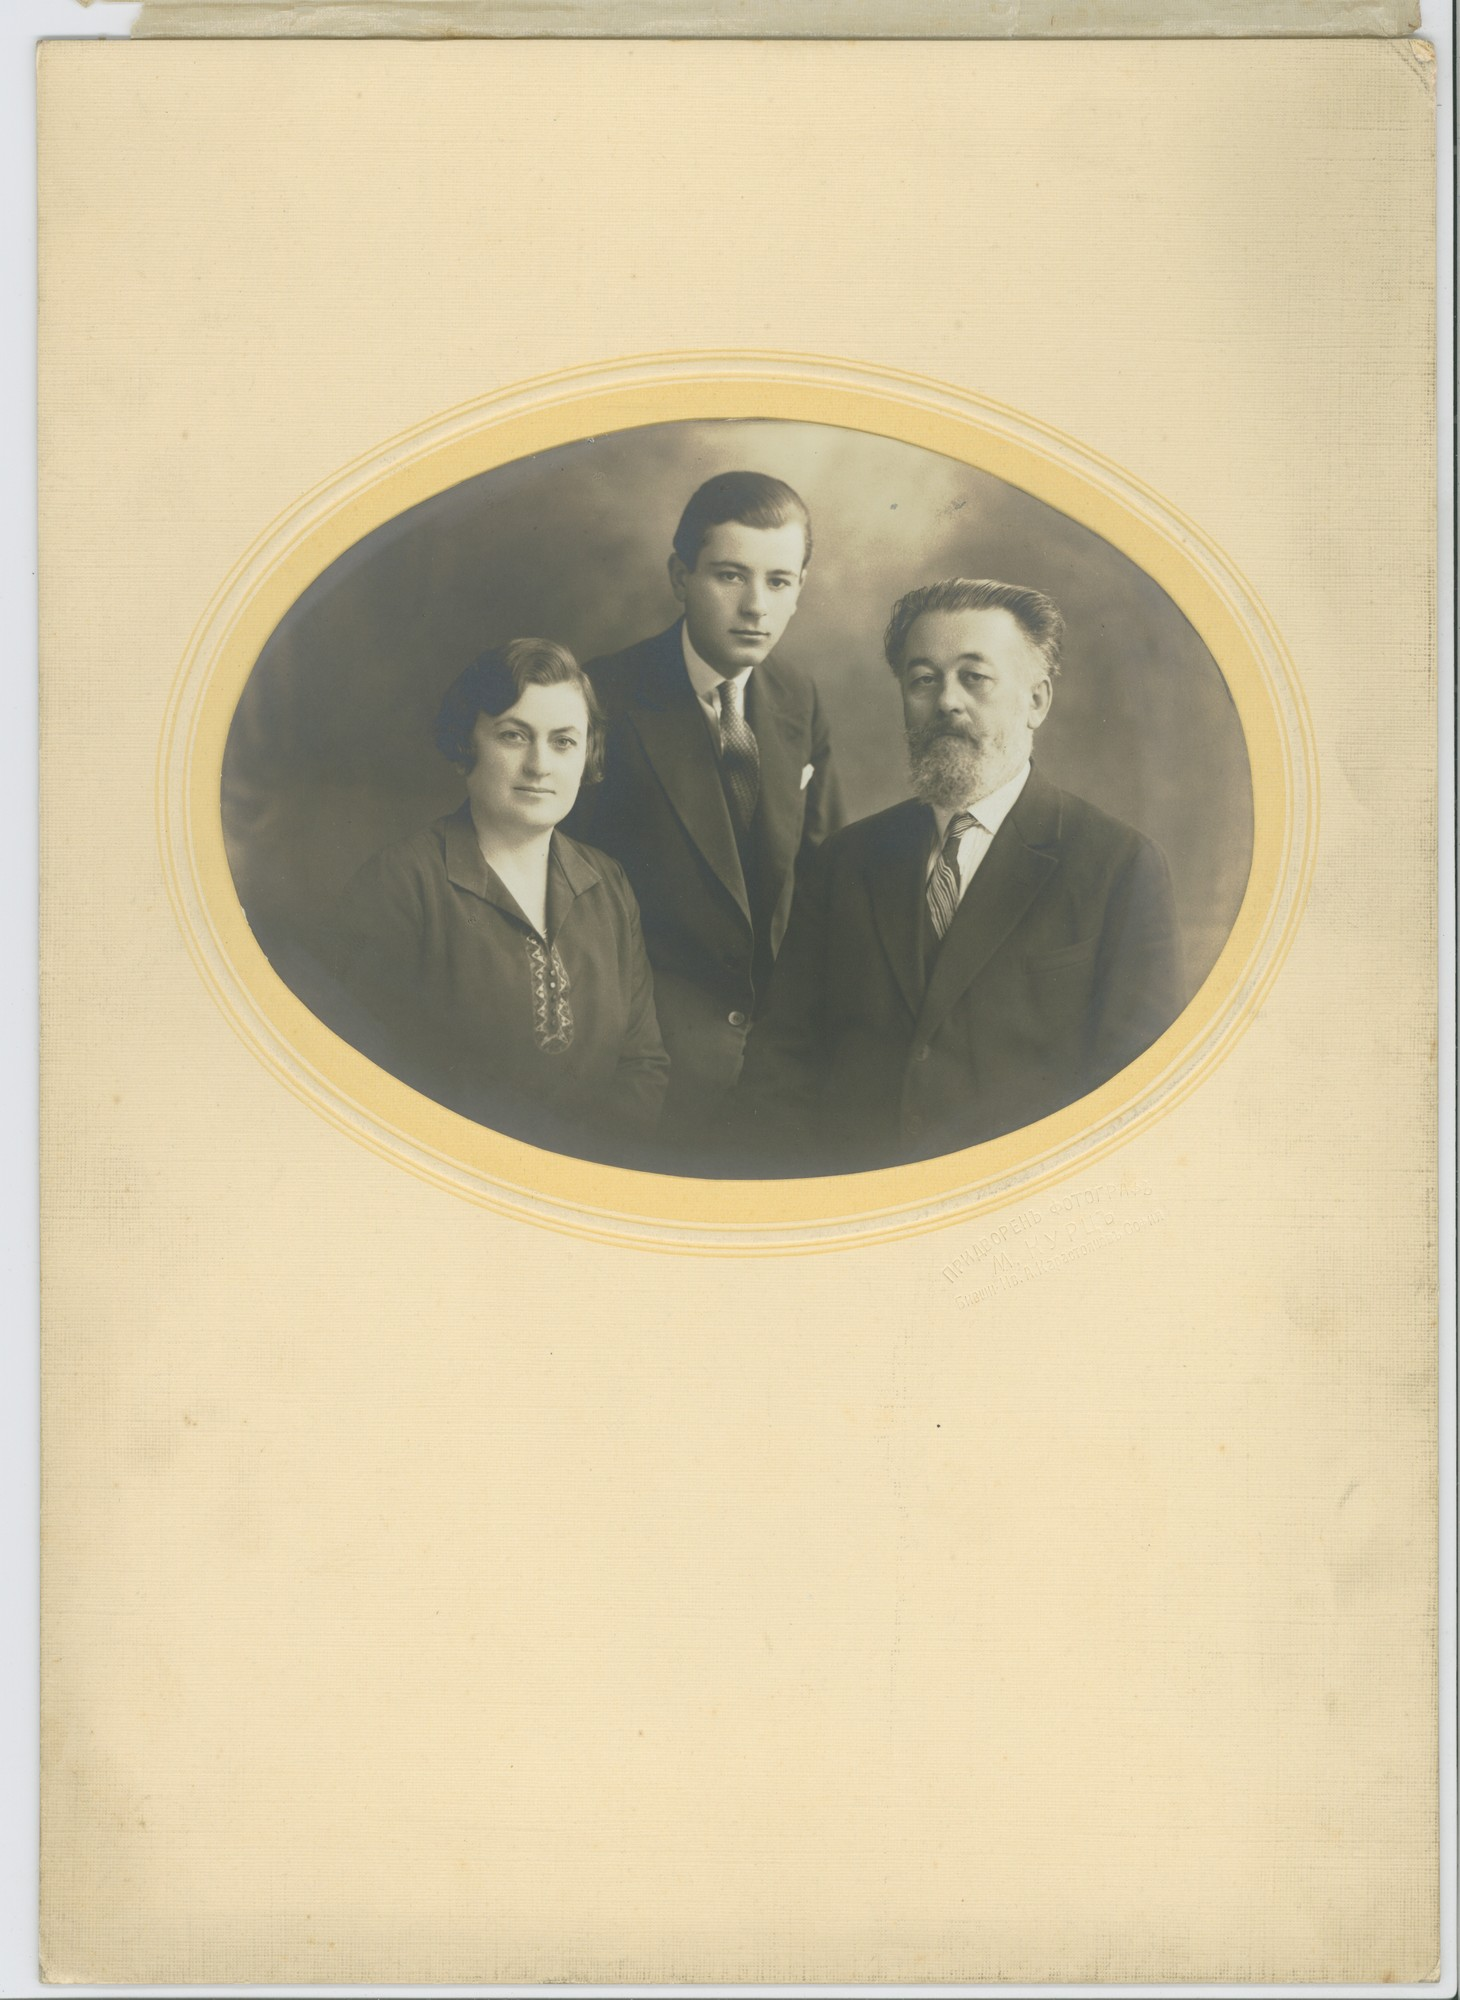 Studio portrait of the Ankov family, © Scientific Archive of the Bulgarian Academy of Sciences